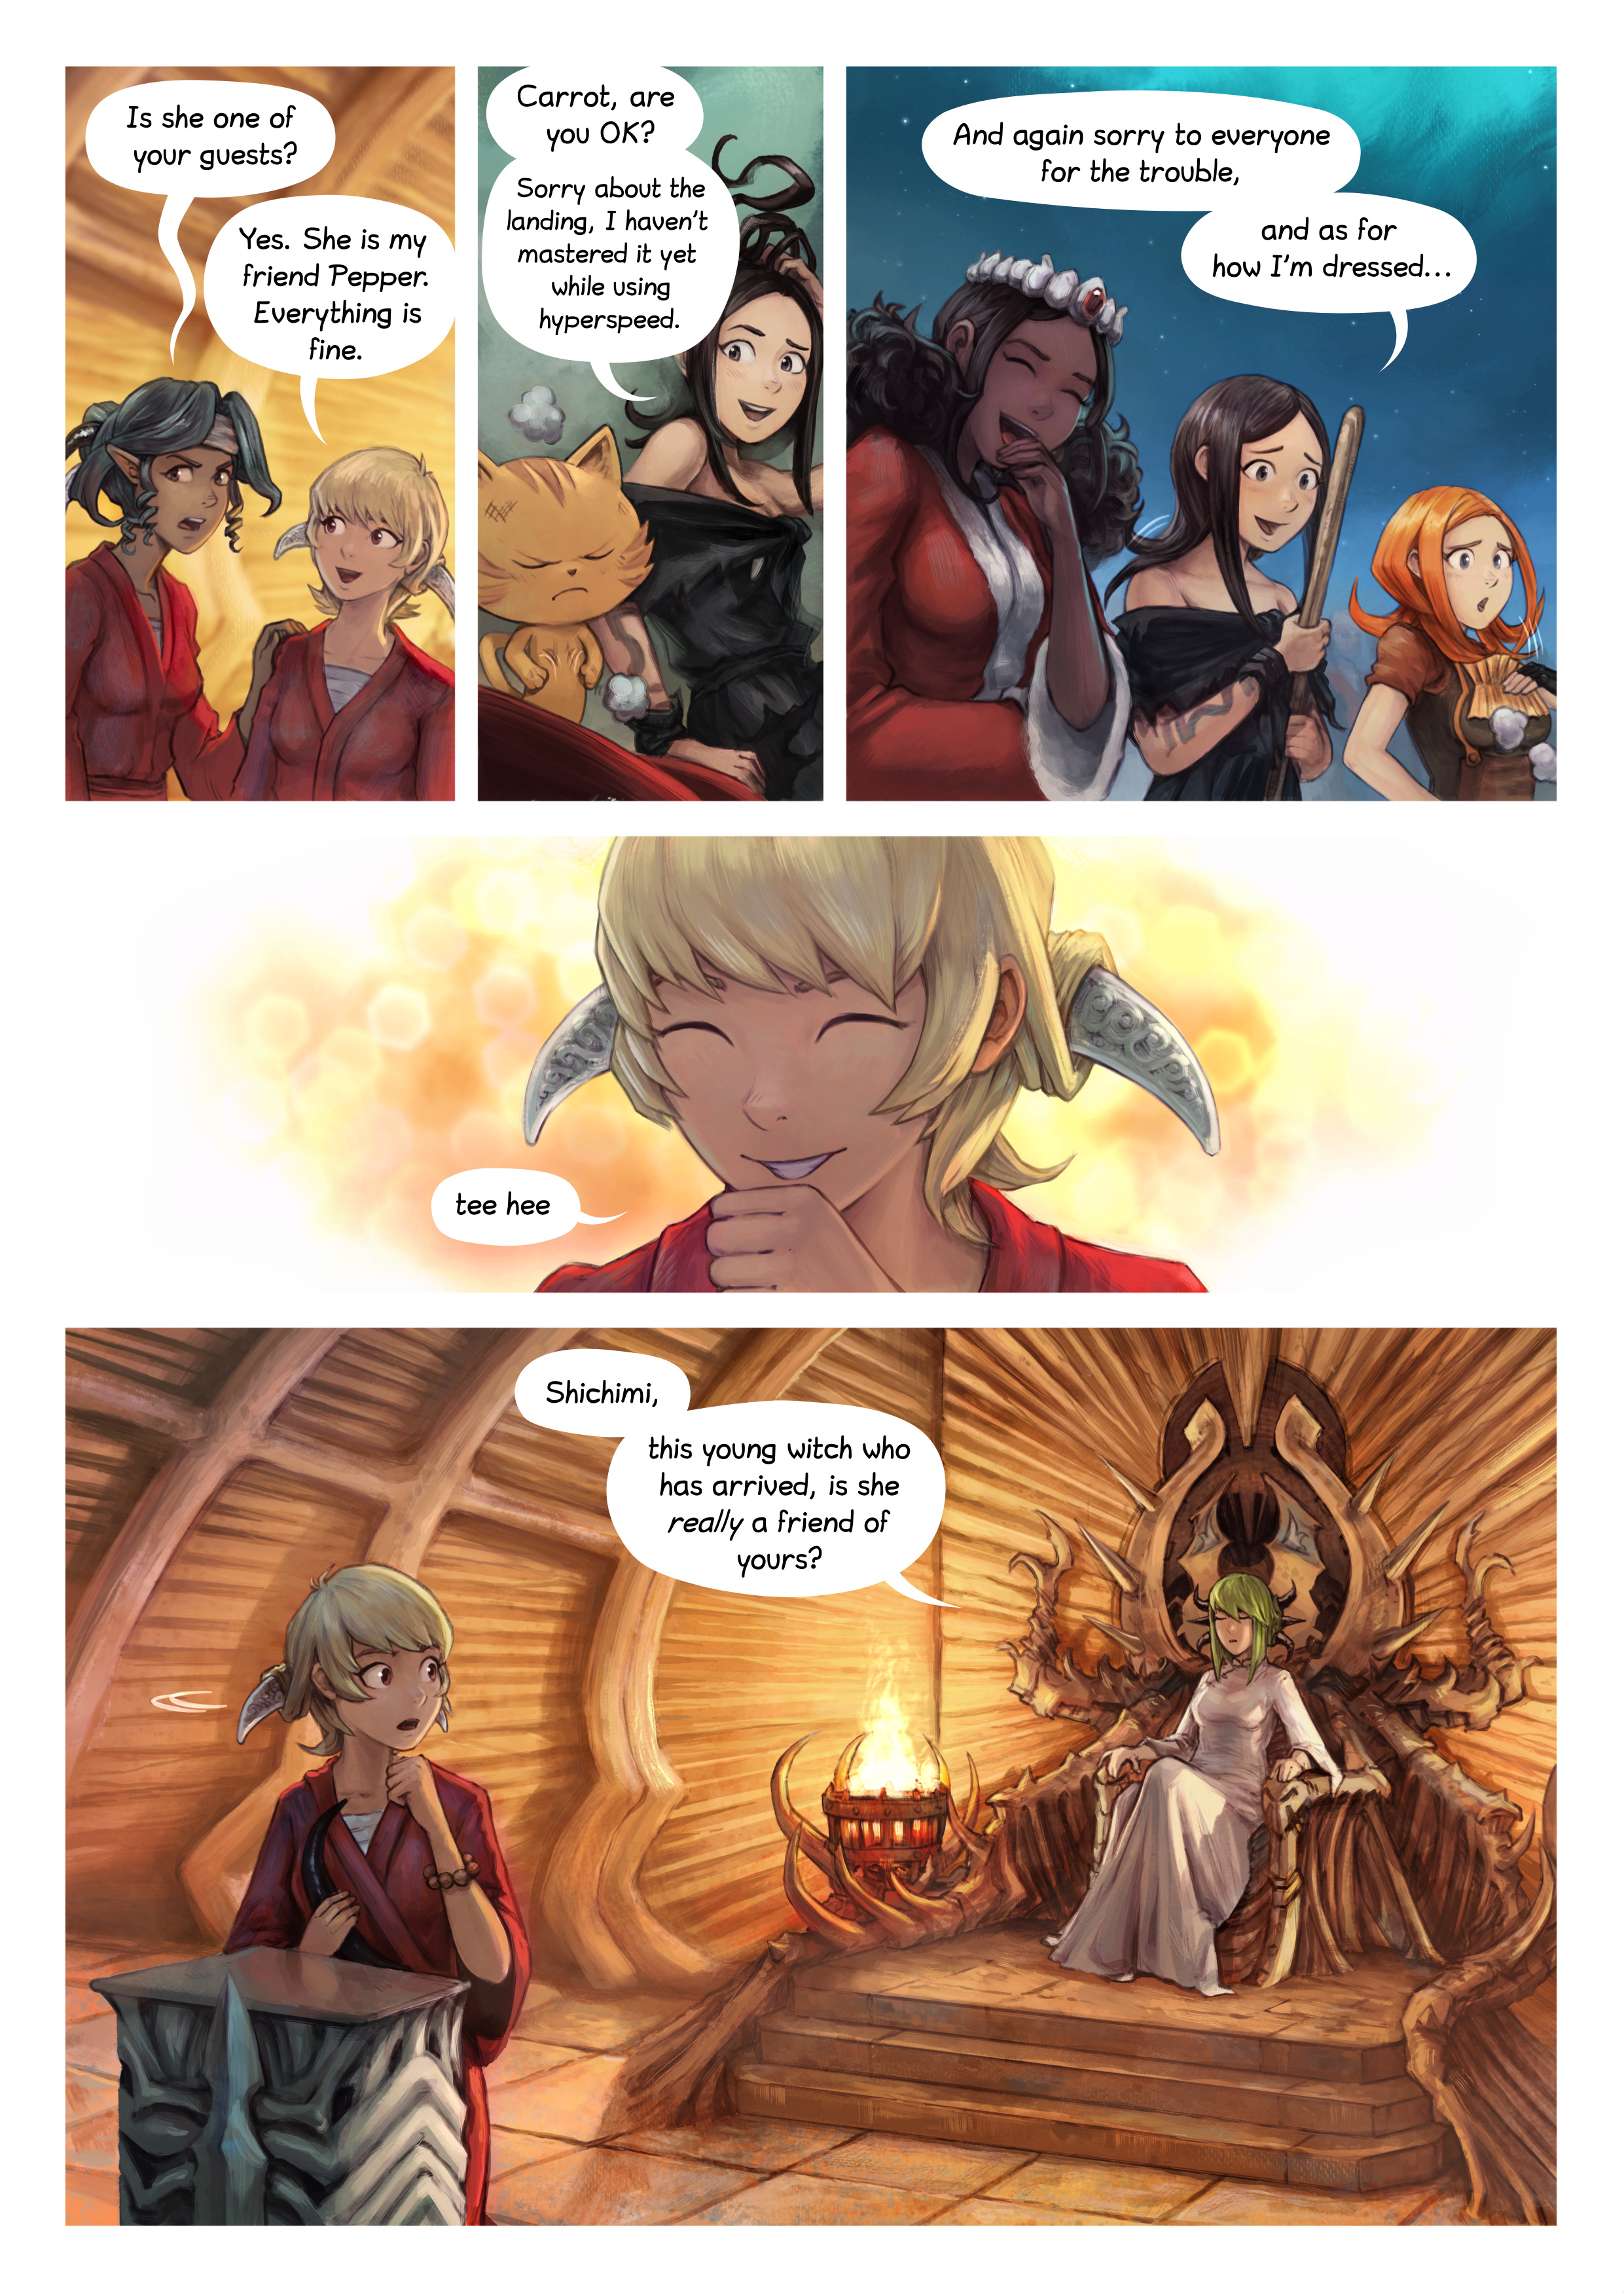 Episode 34: The Knighting of Shichimi, Page 3